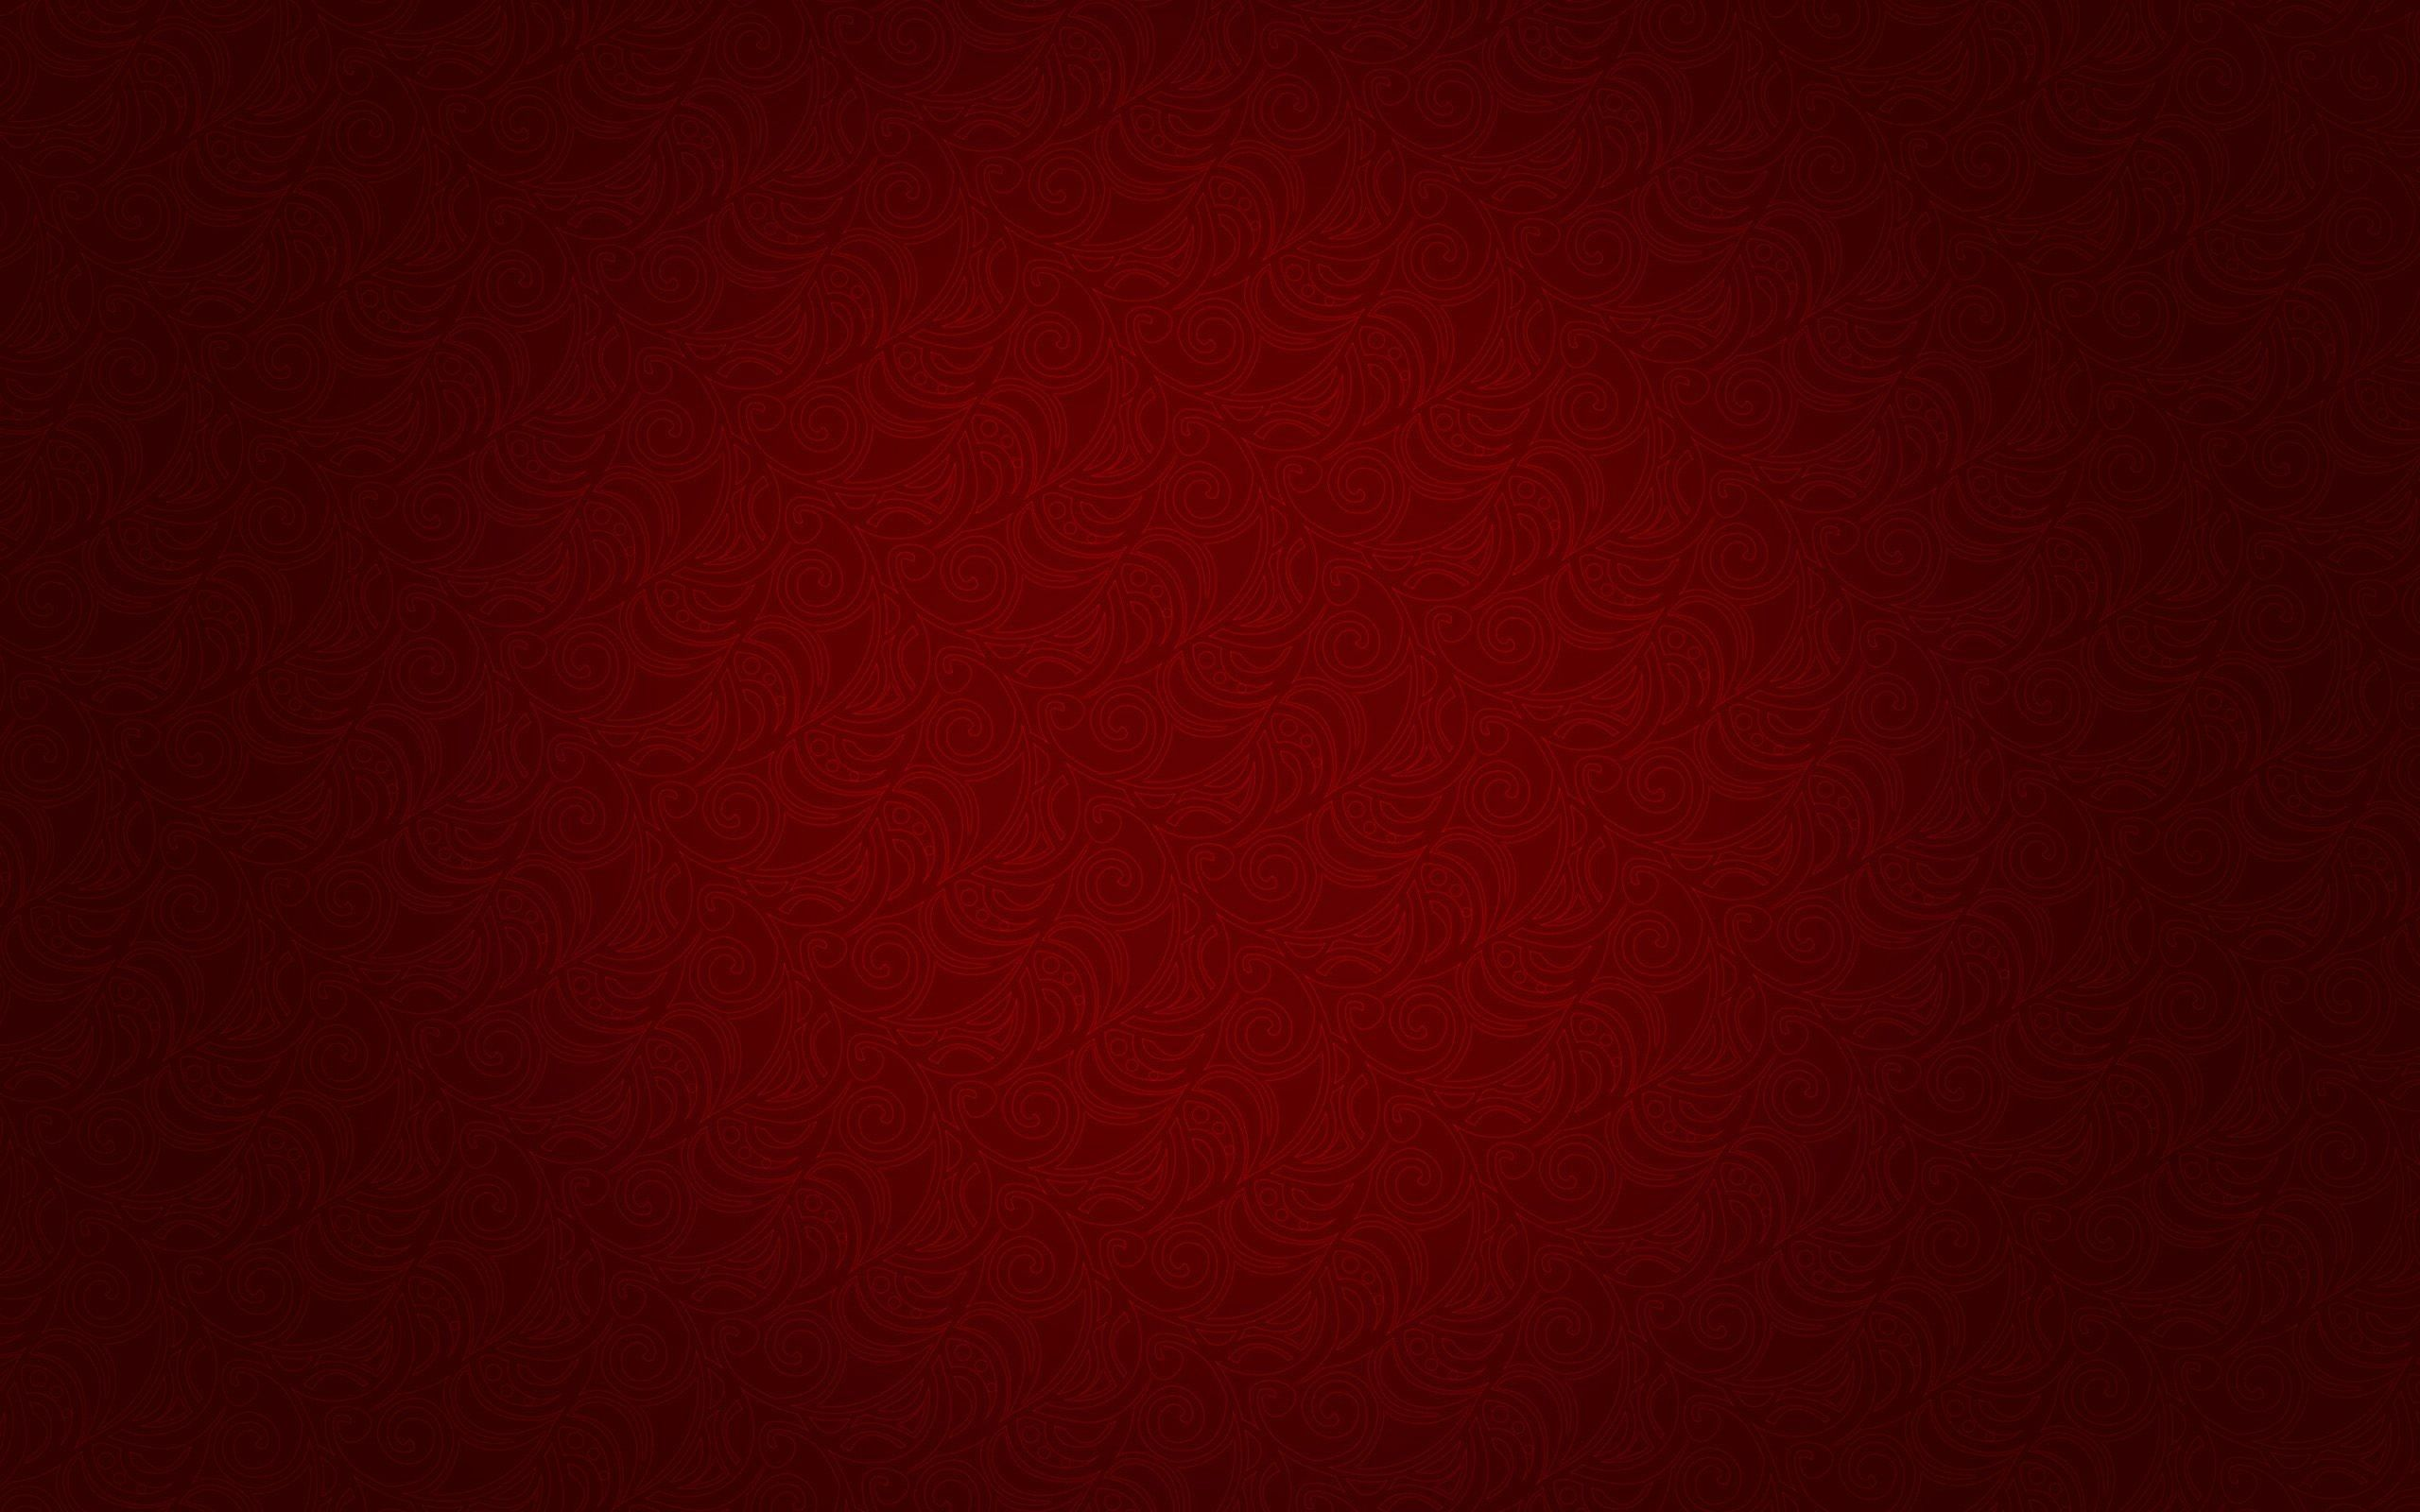 2560x1600 66+ Solid Red Wallpapers on WallpaperPlay